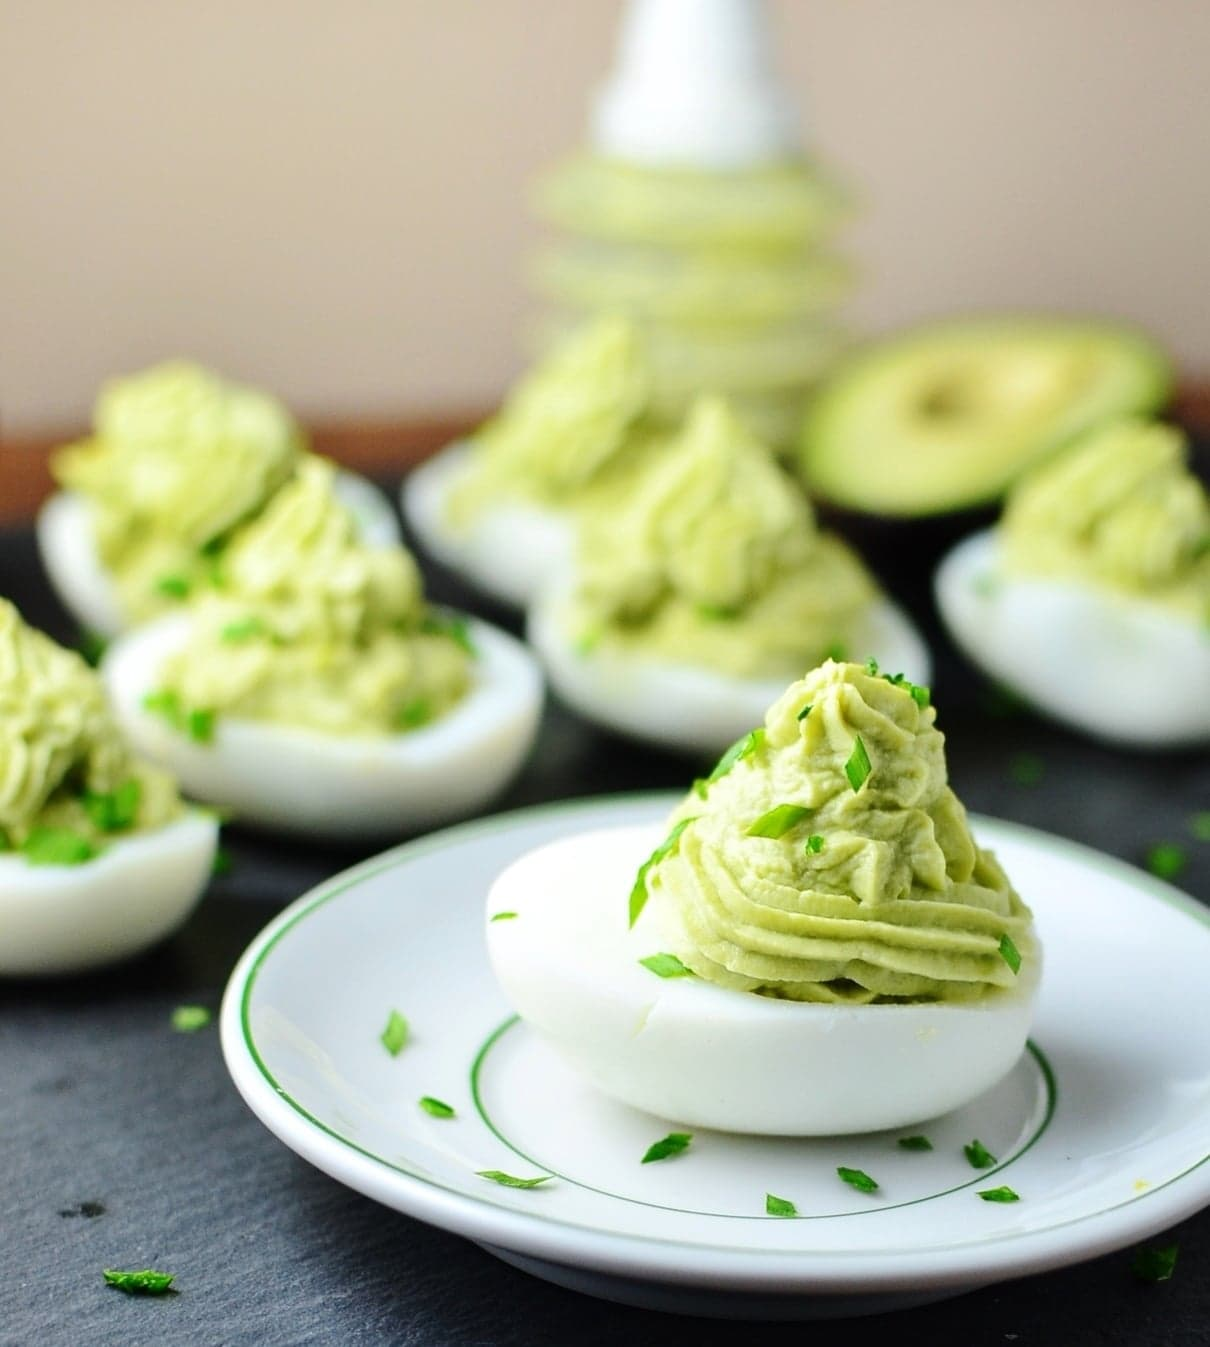 Deviled eggs with avocado on small white plate with garnish of chives and deviled eggs in background.